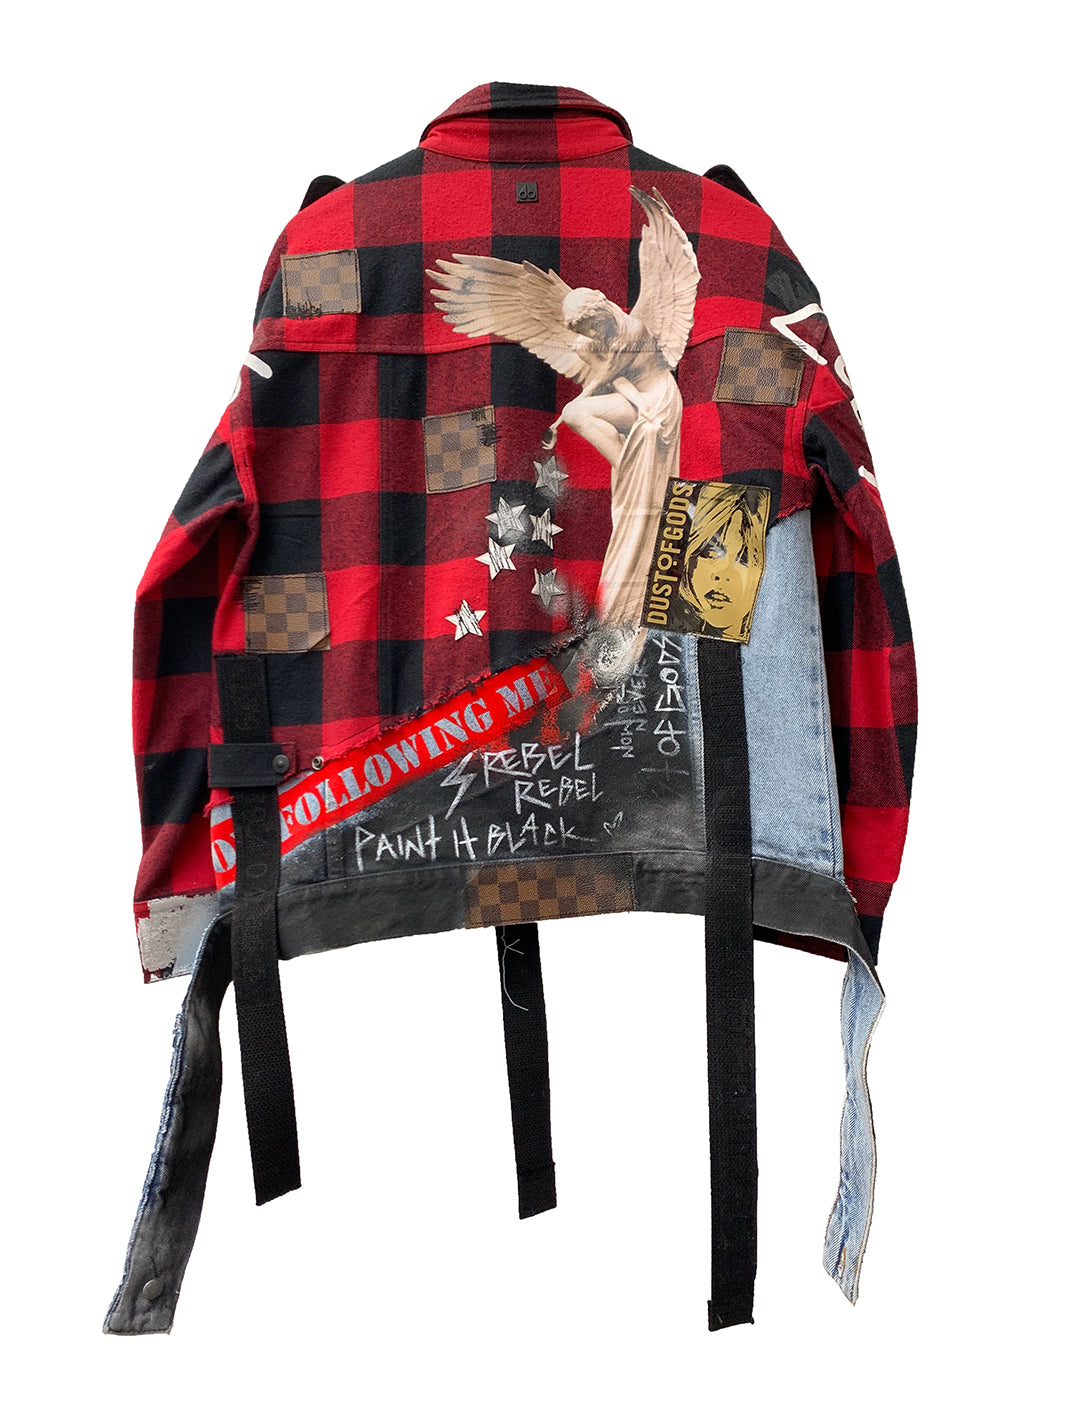 This is not LV denim x plaid extended jacket